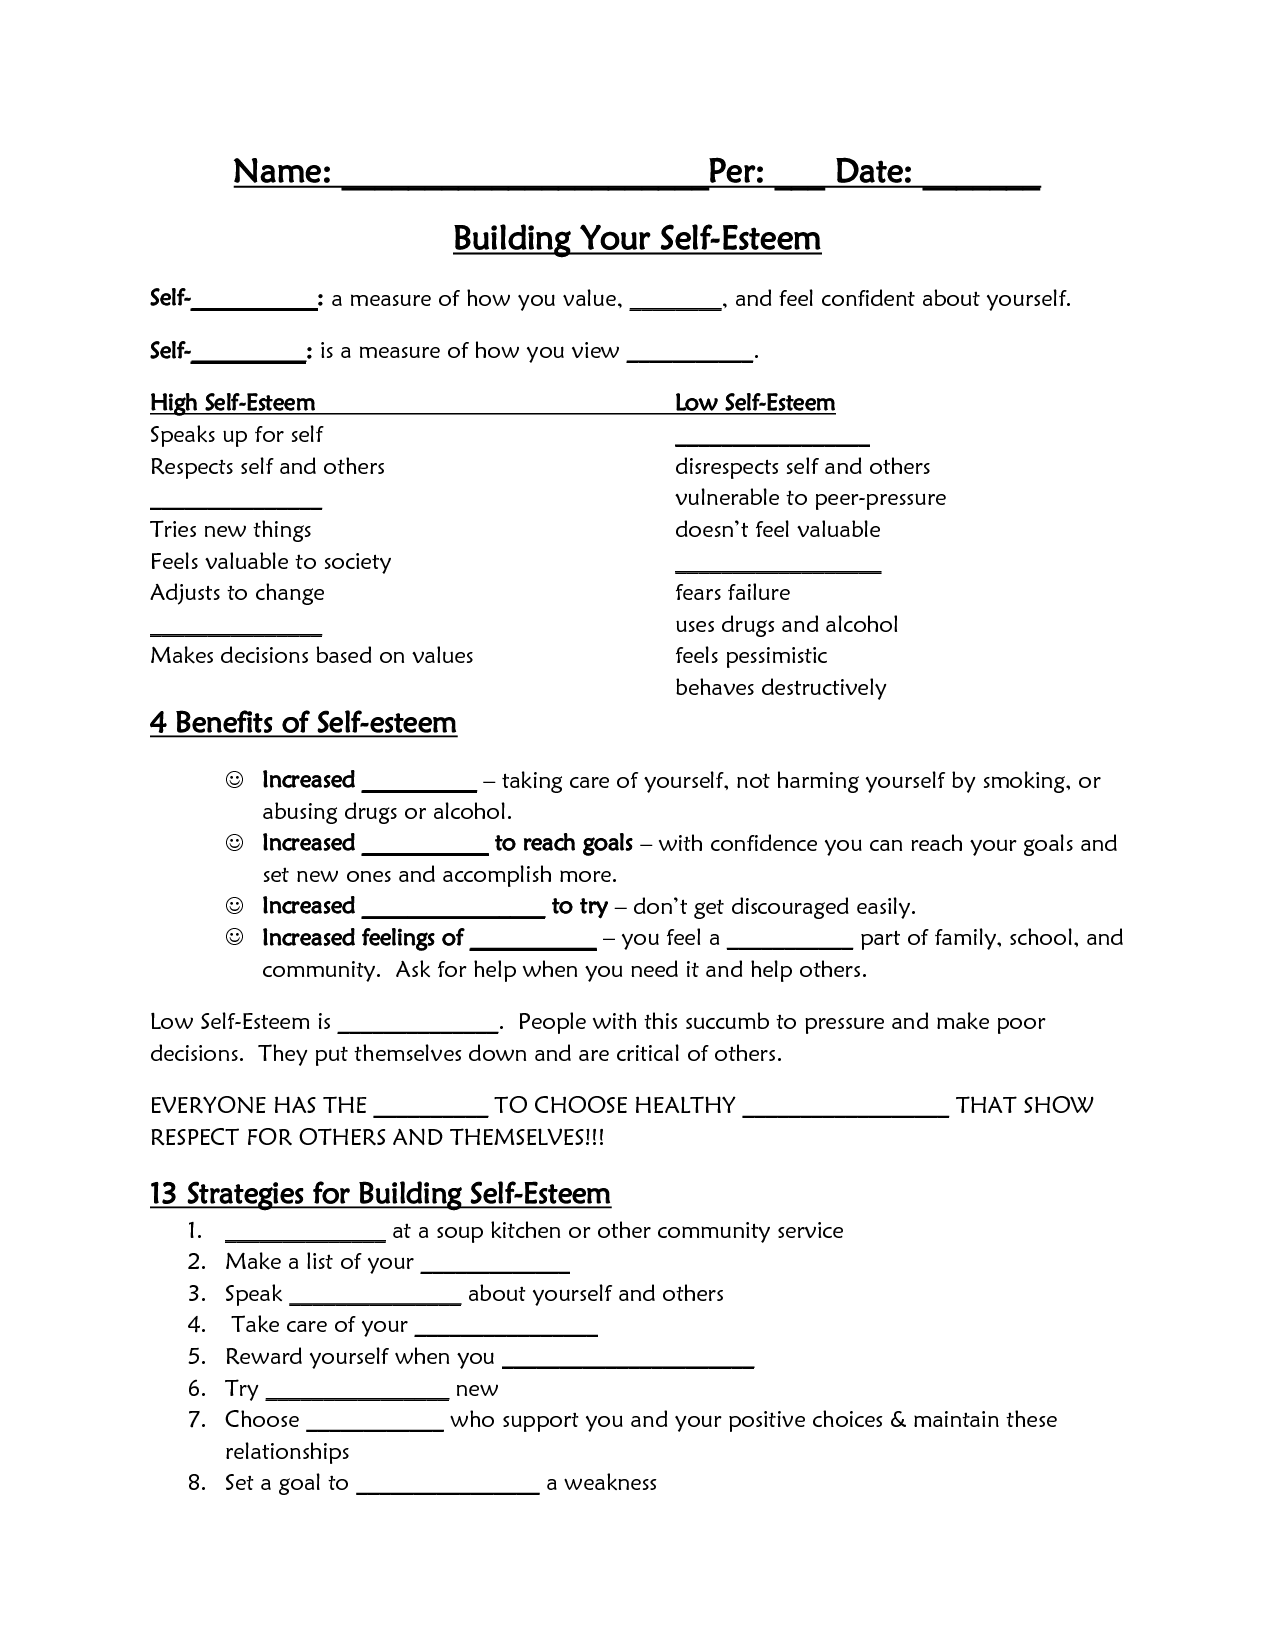 worksheet Self Esteem Building Worksheets self esteem worksheet google search confidence tips search